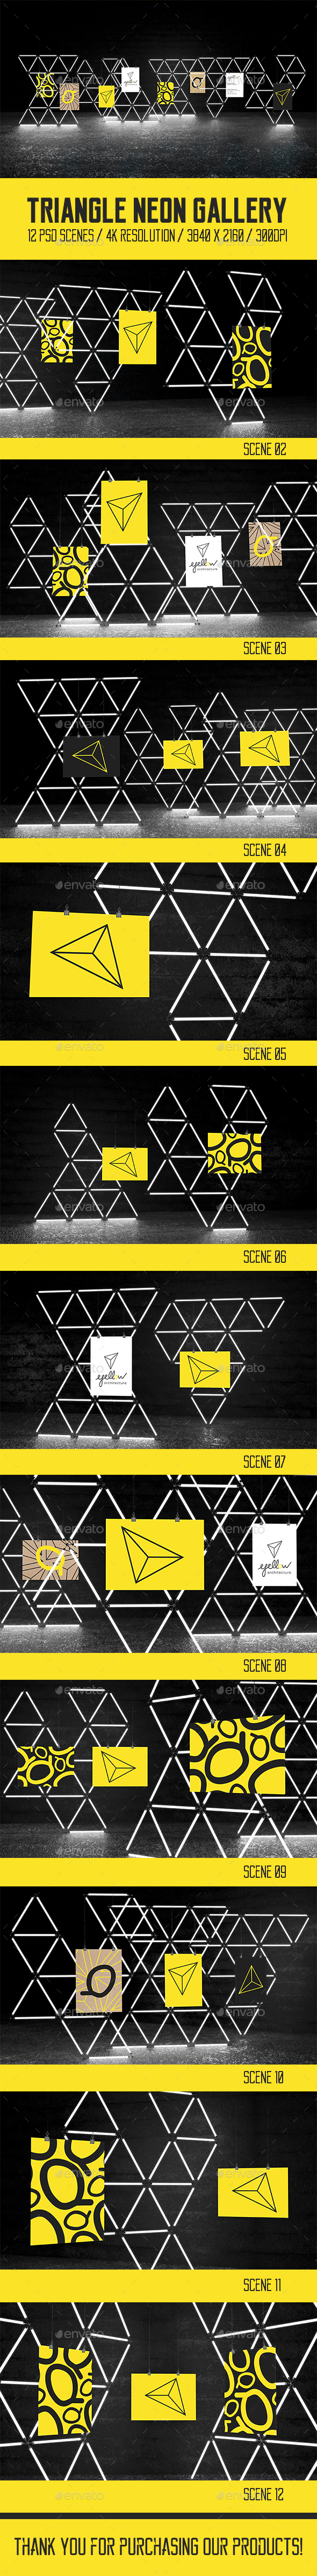 Triangle Neon Gallery Mock Ups Pack - Print Product Mock-Ups